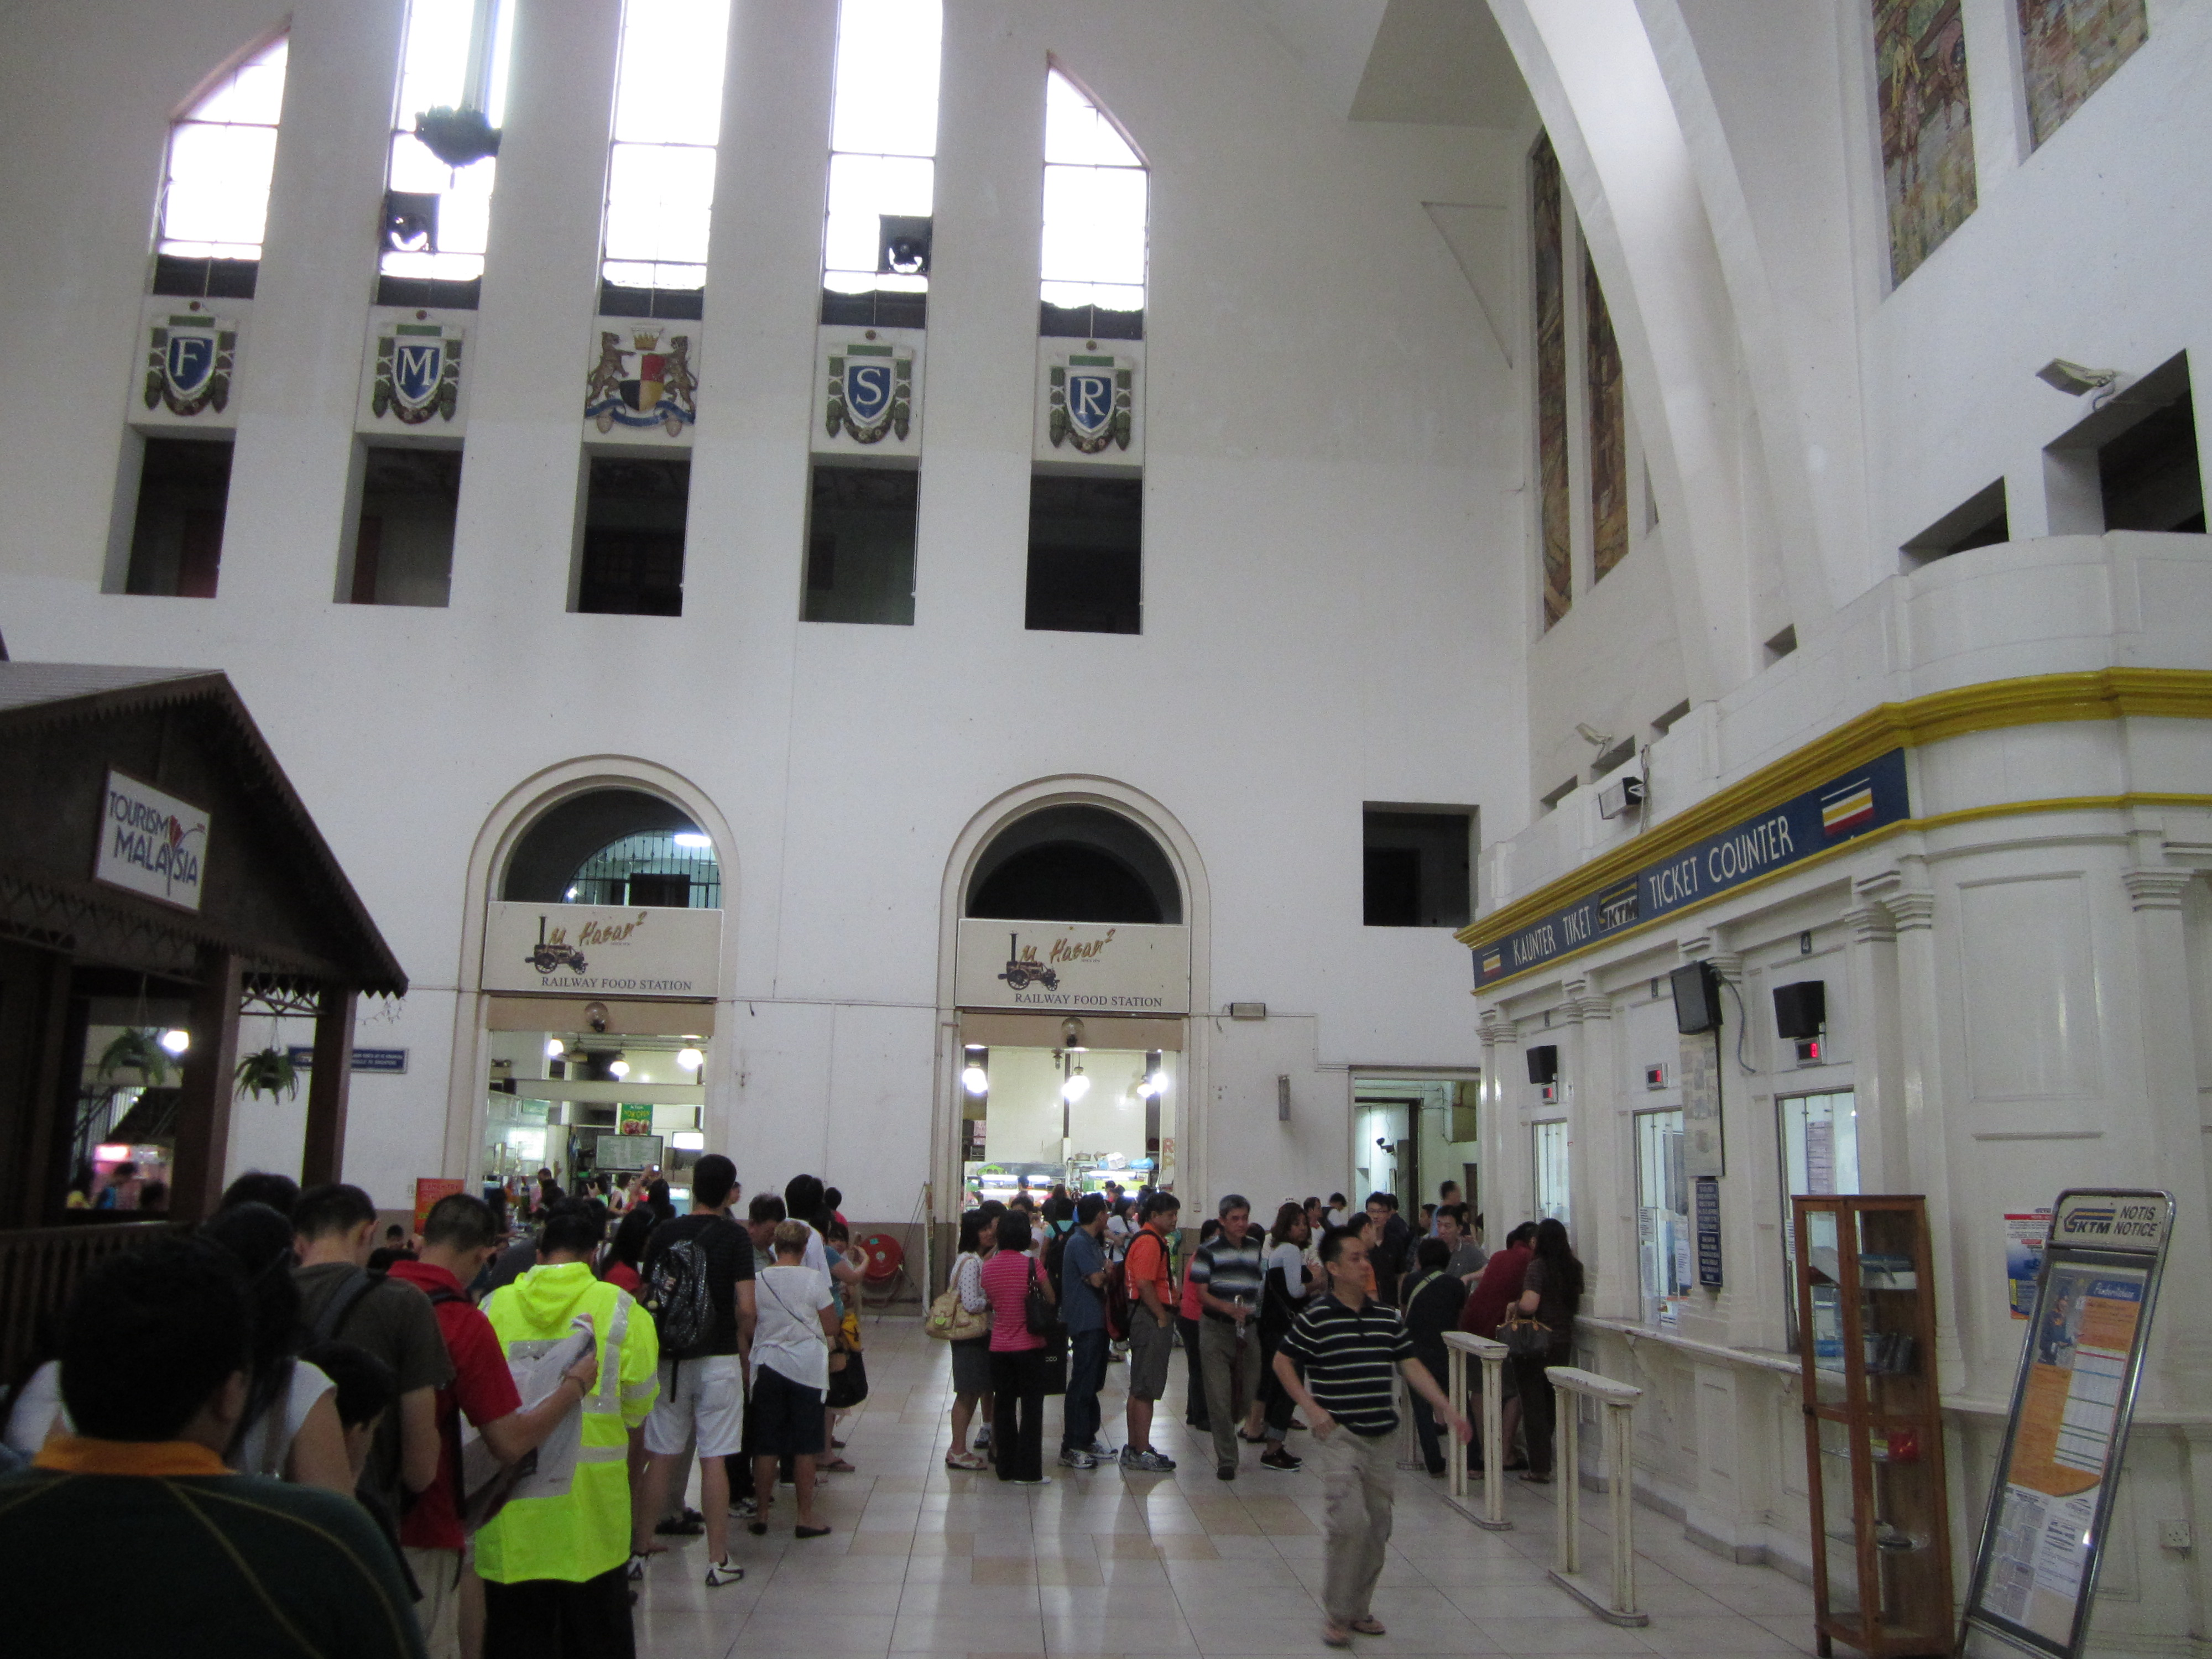 All aboard: riding the train from tanjong pagar rail station to johor bahru